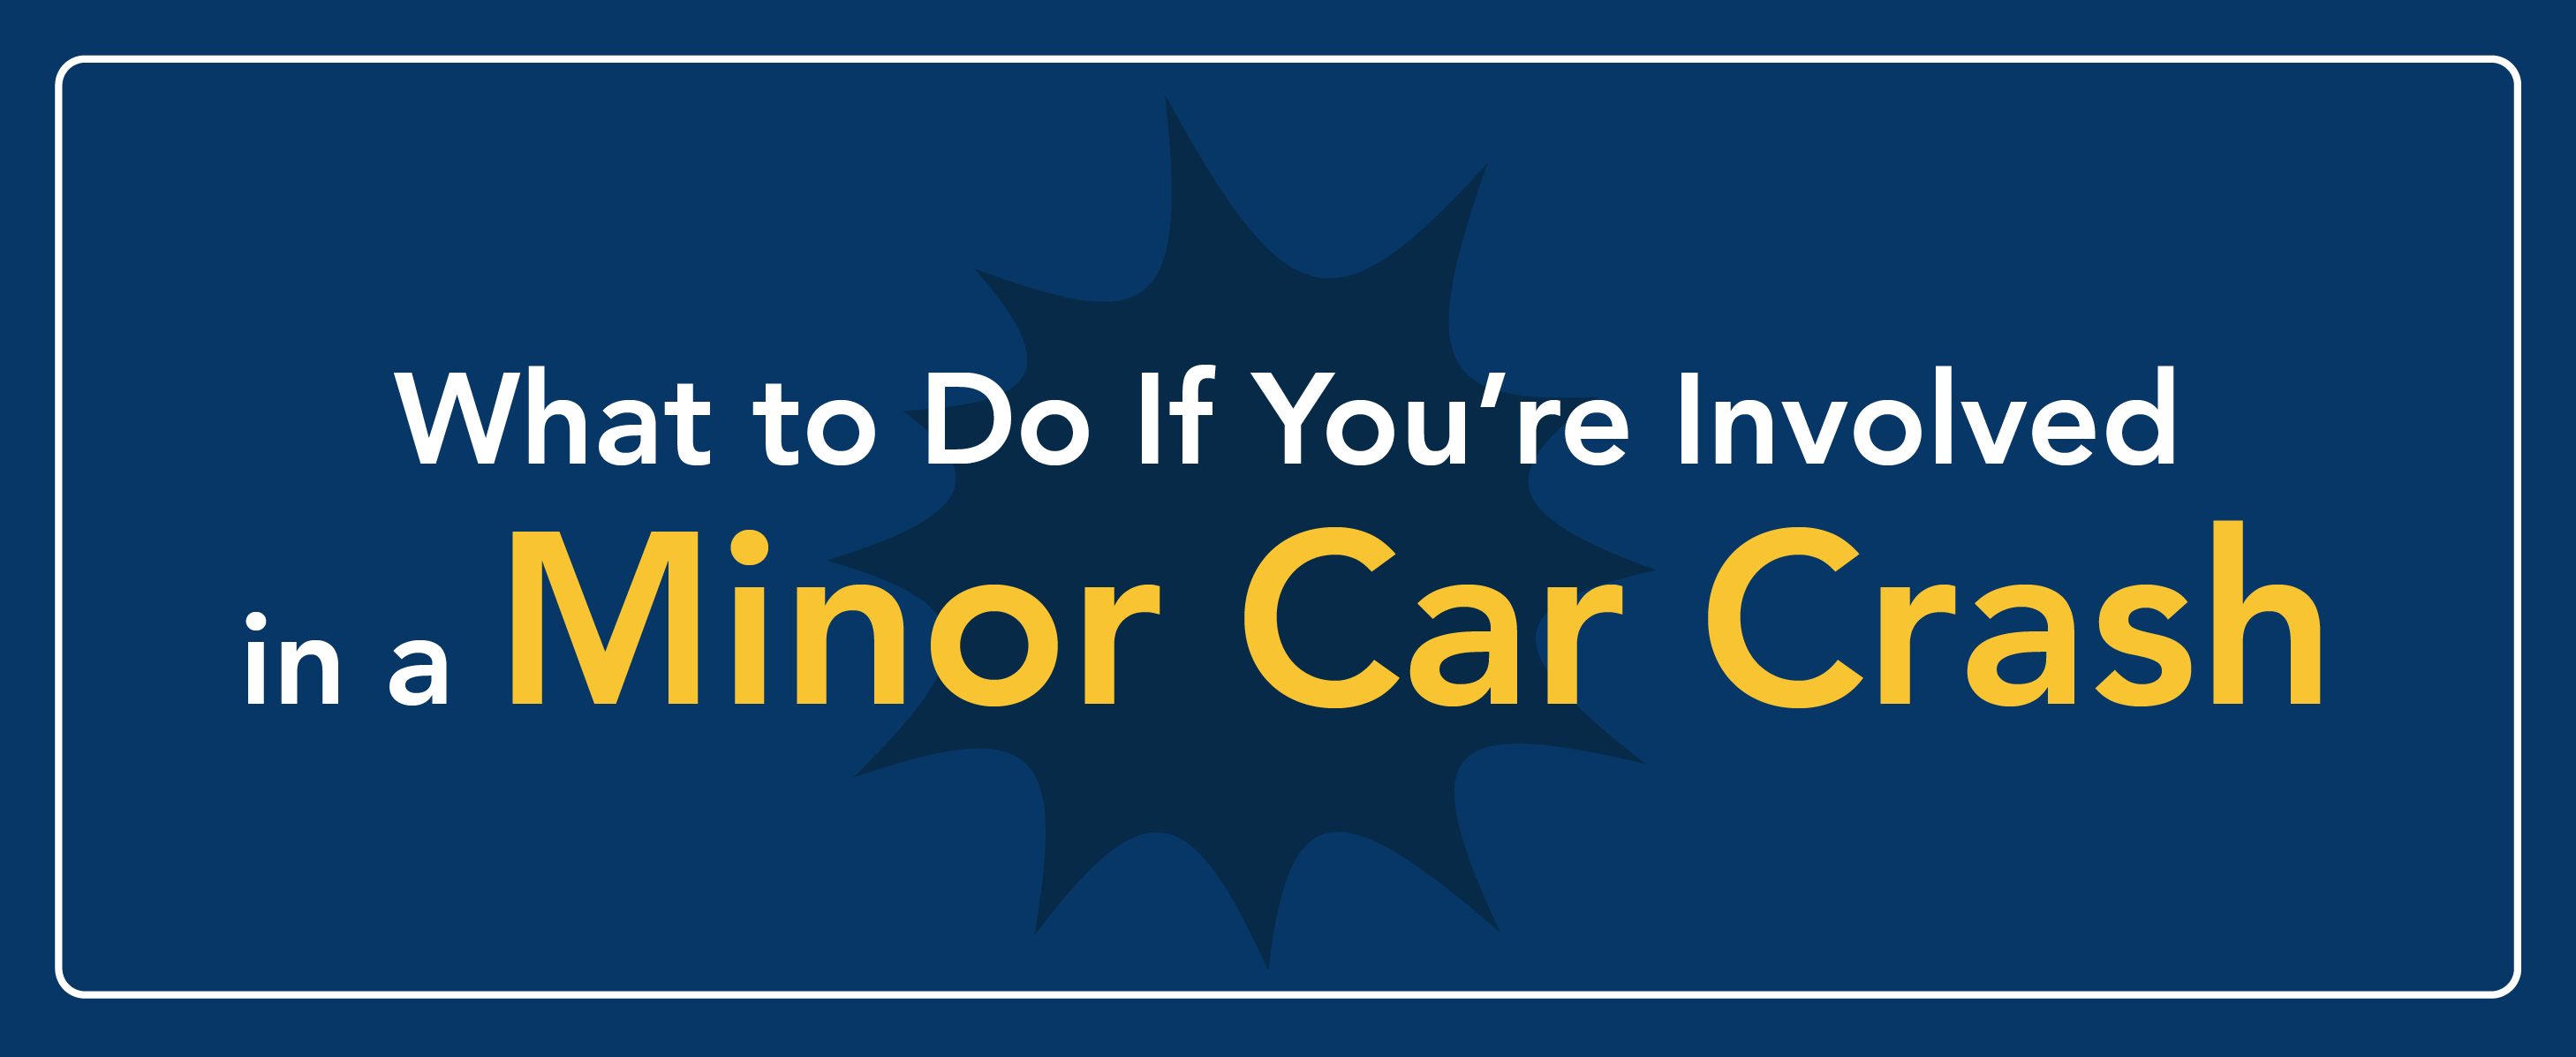 What to do if you're involved in a minor car crash.